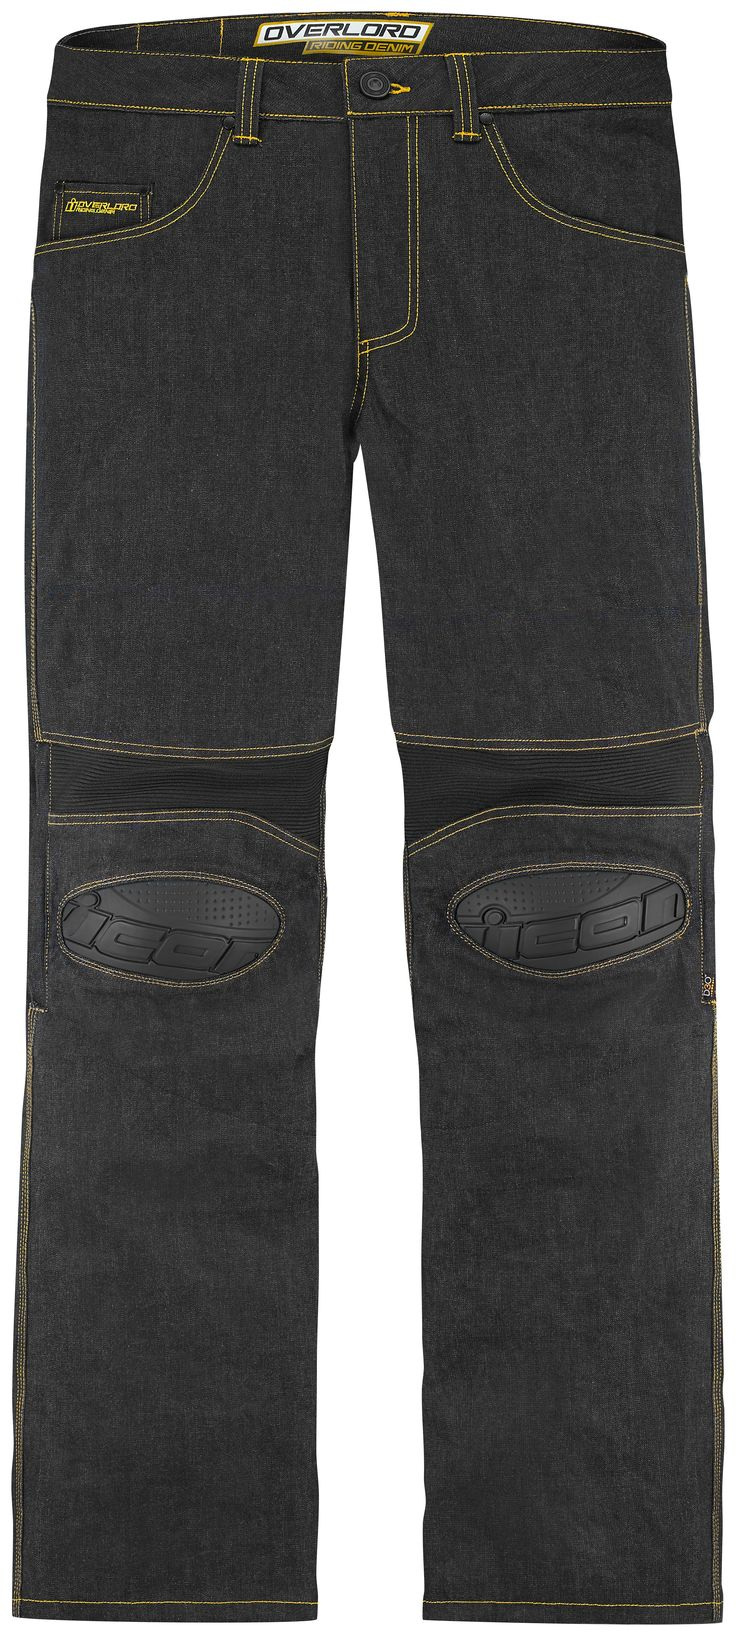 Motorcycle gloves with id pocket - Sport Riding Pant Meets Denim The Icon Overlord Riding Pants Take Your Traditional 5 Pocket